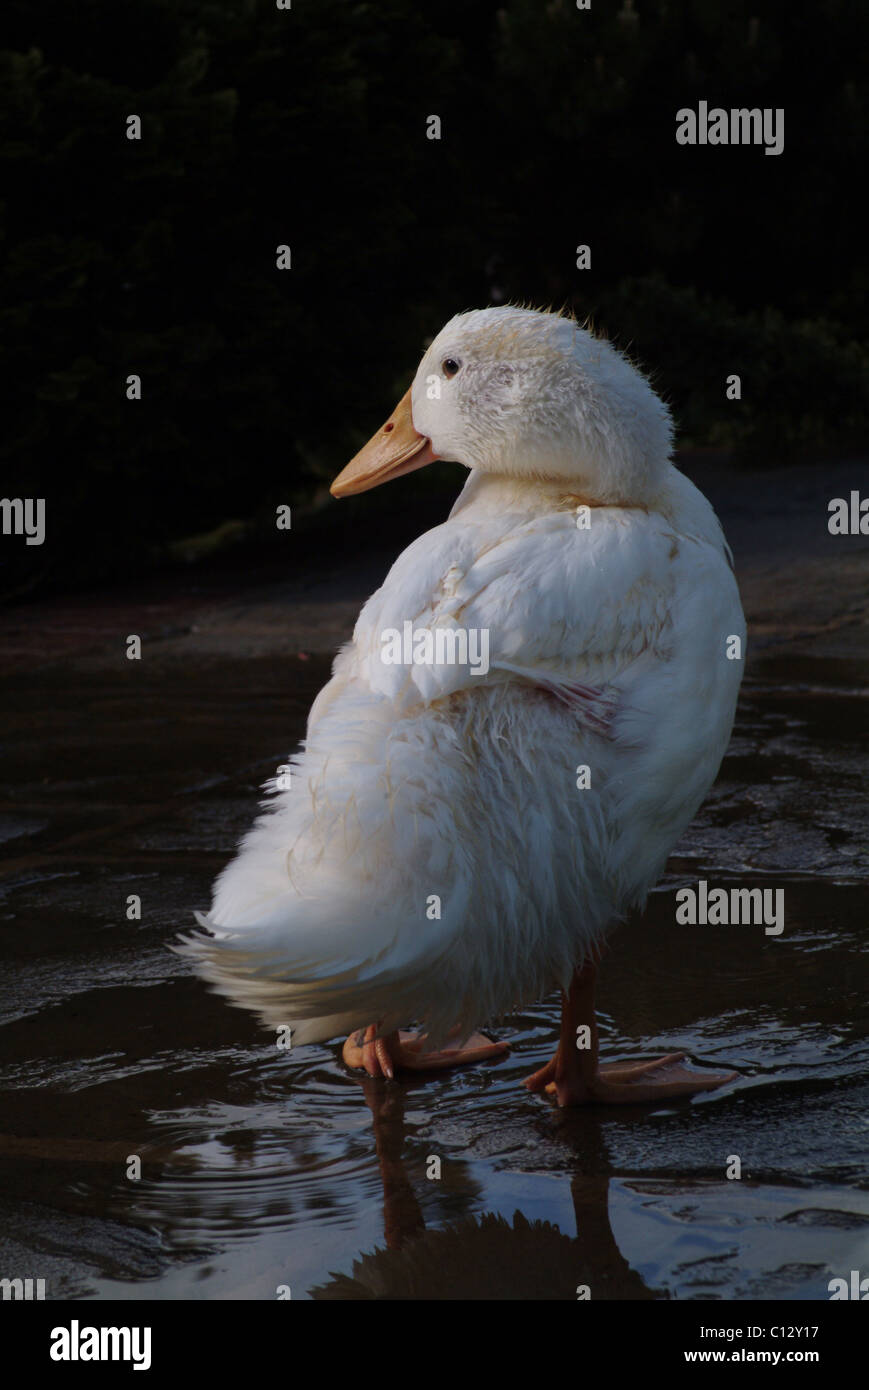 Puddle duck - Stock Image